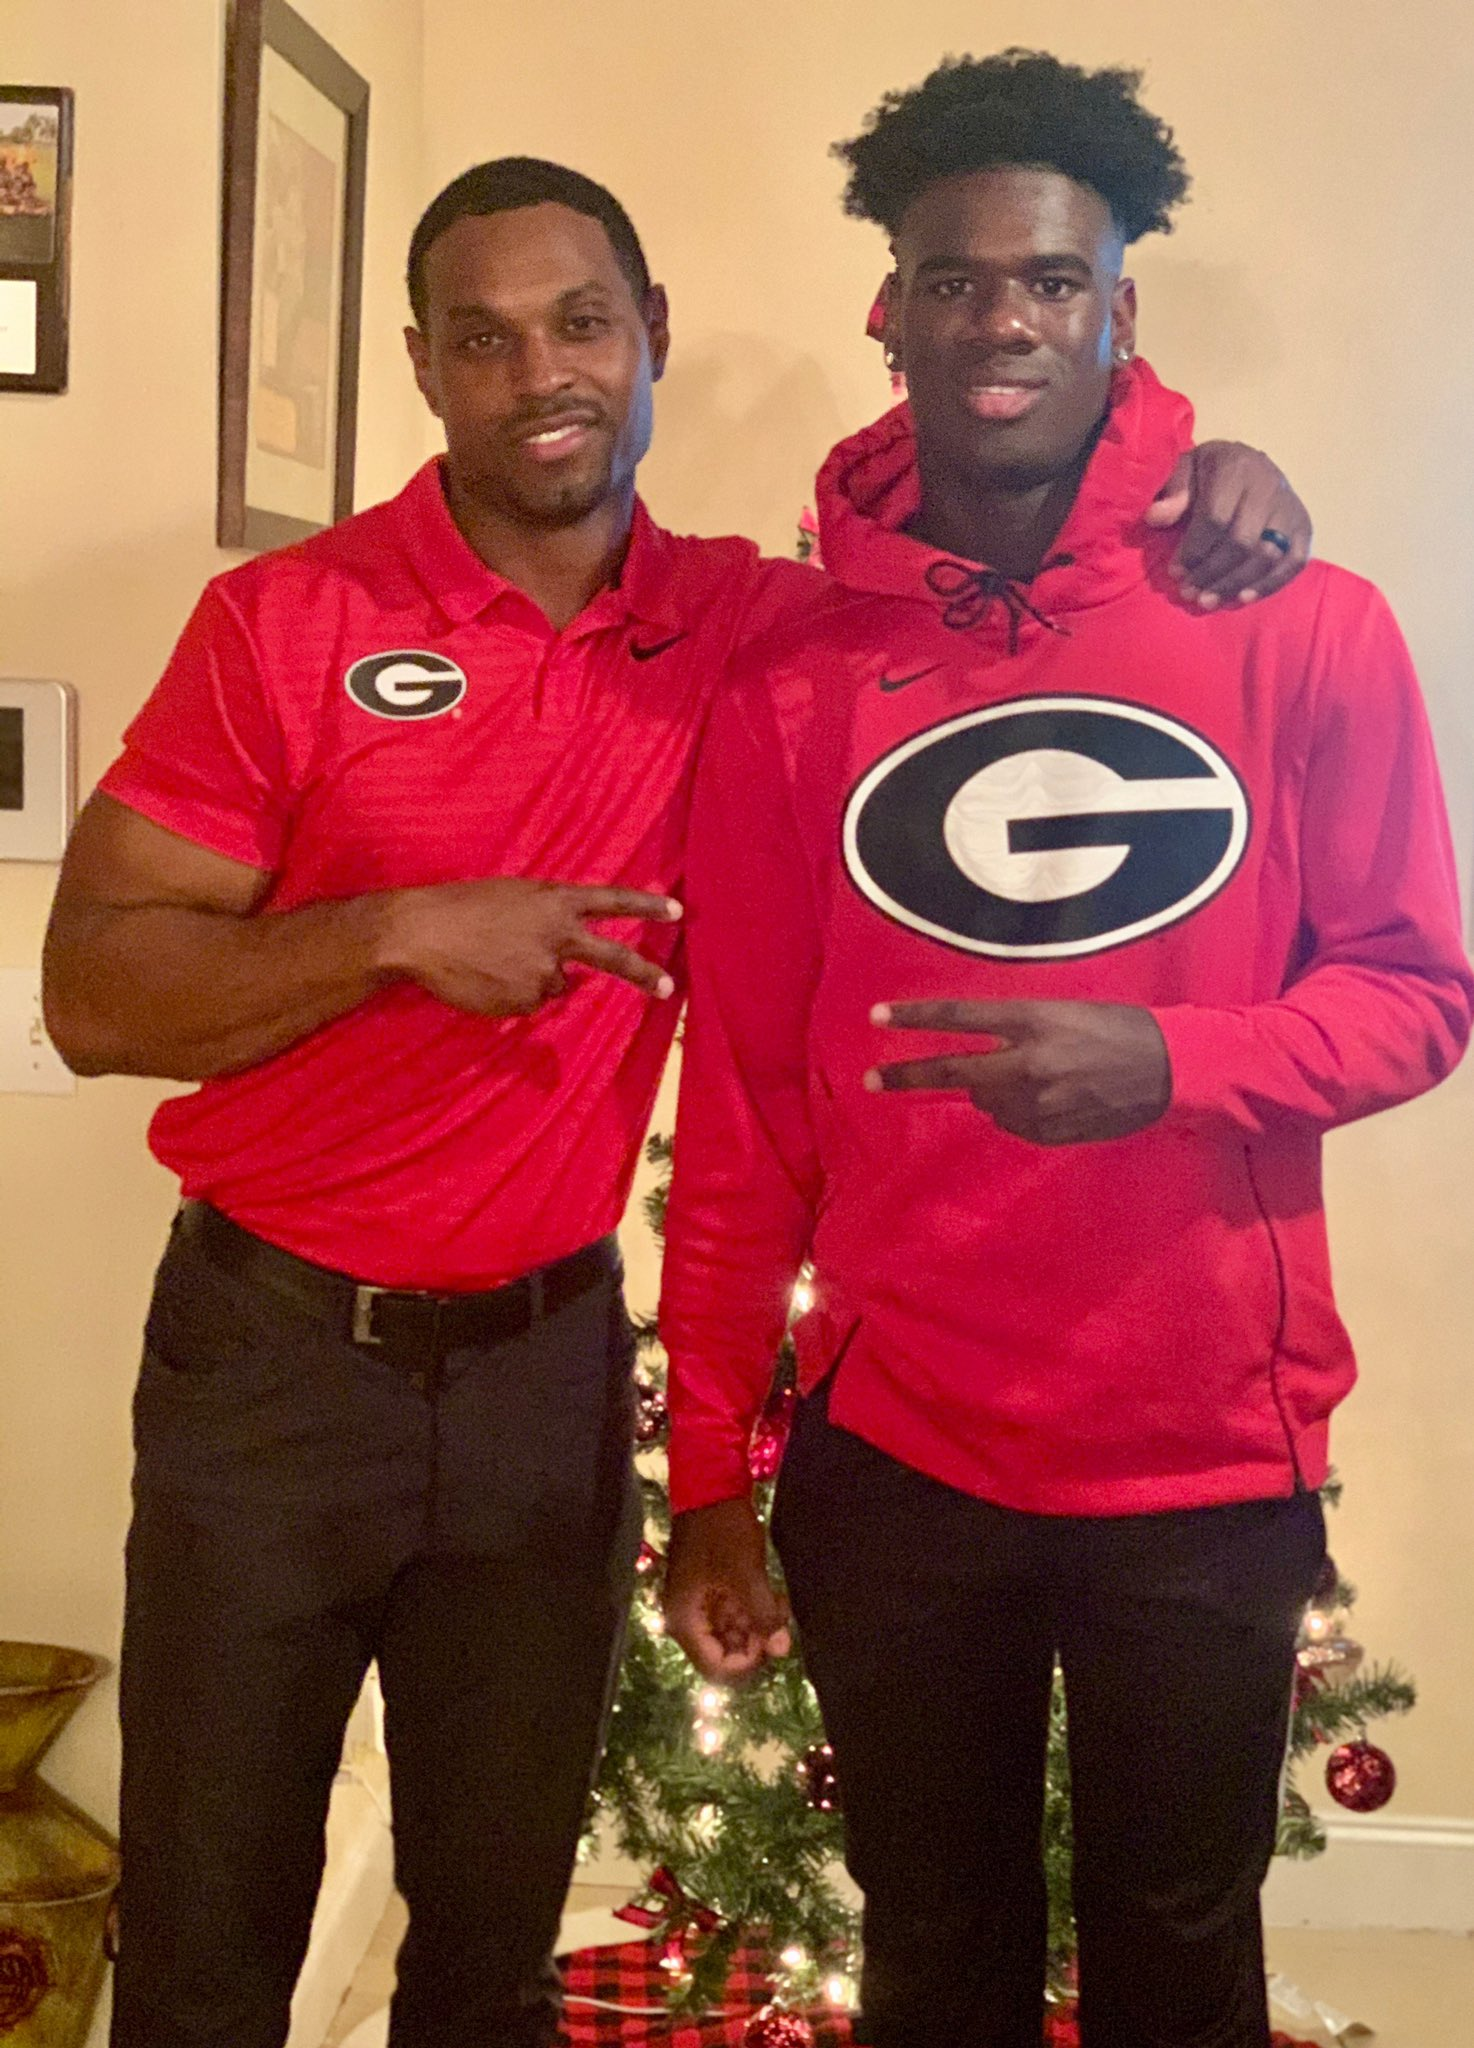 Rosemy and UGA wide receivers coach Cortex Hankton(Photo from Marcus Rosemy's Twitter)